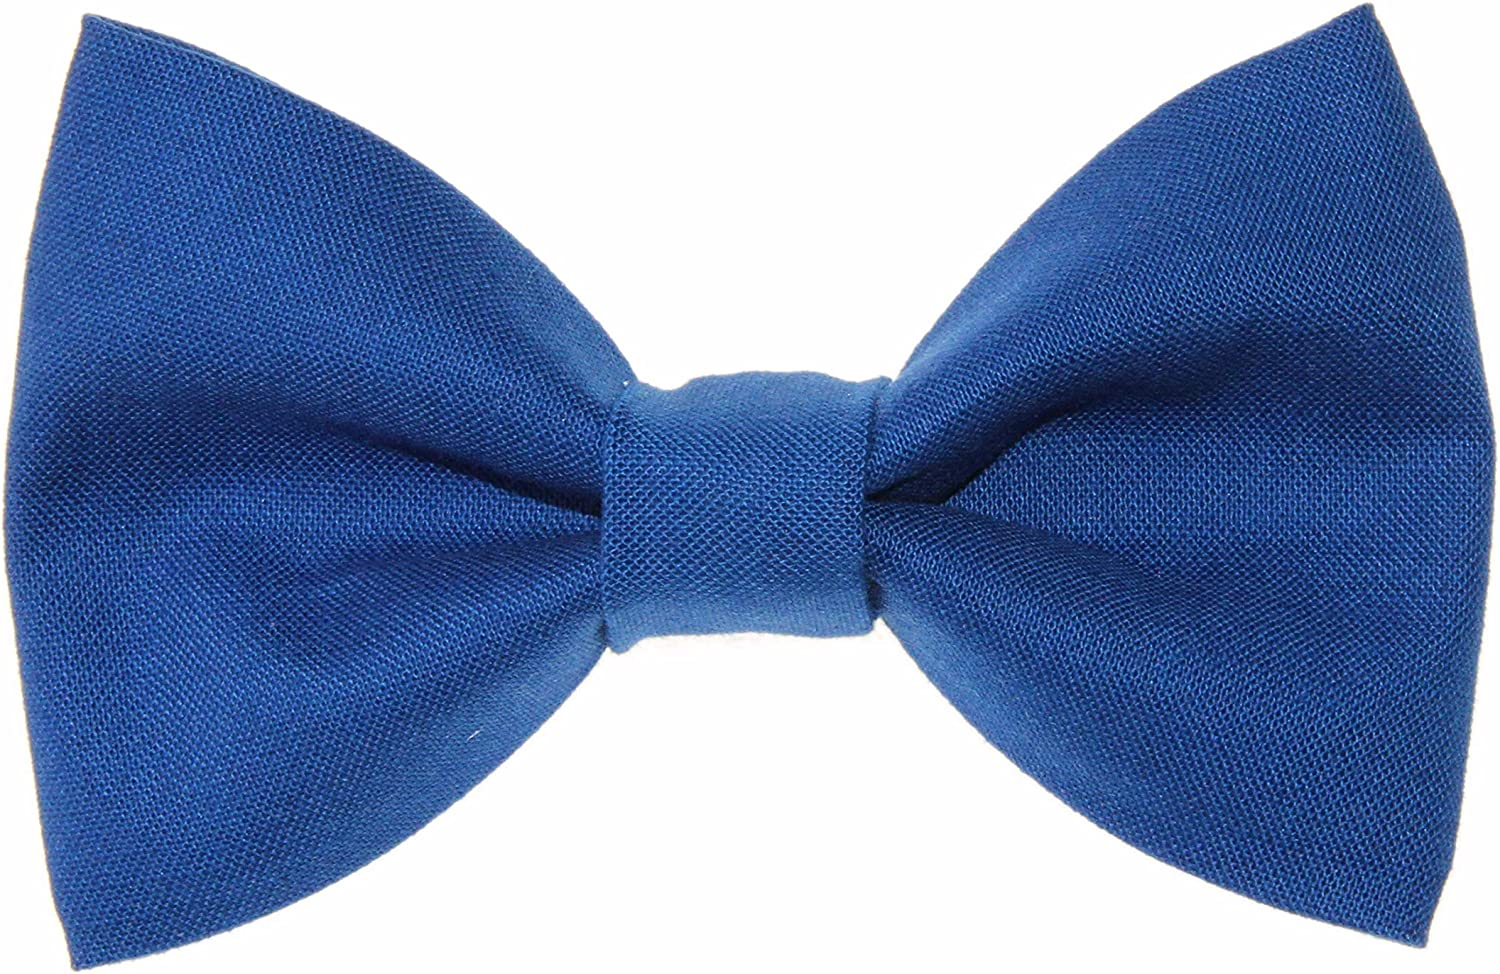 Boys Royal Blue Clip On Cotton Bow Tie Bowtie - Made in USA